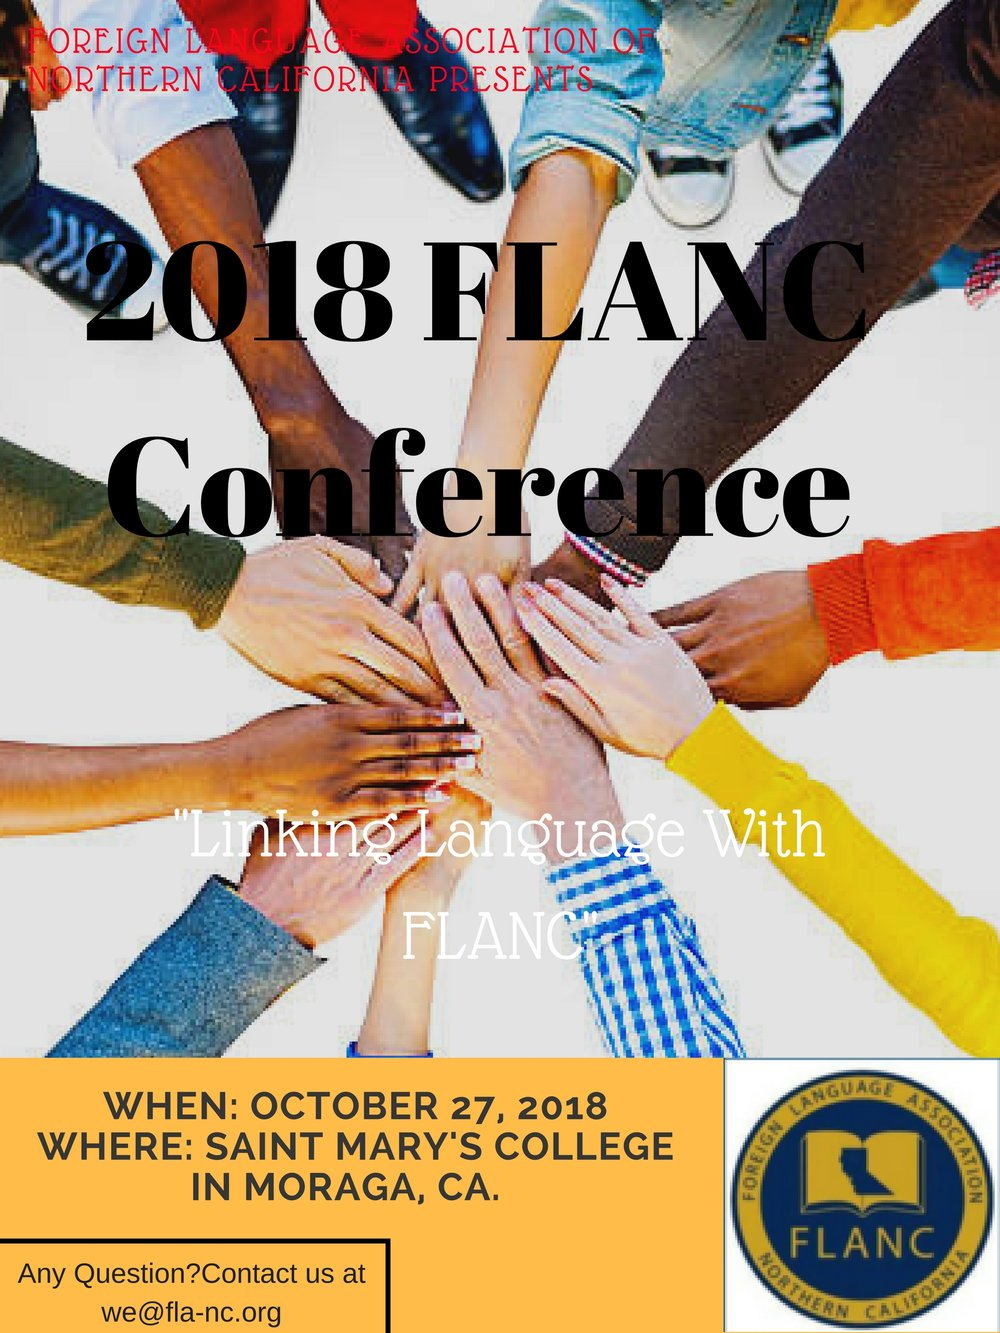 FLANC - Foreign Language Association of Norther California.jpg